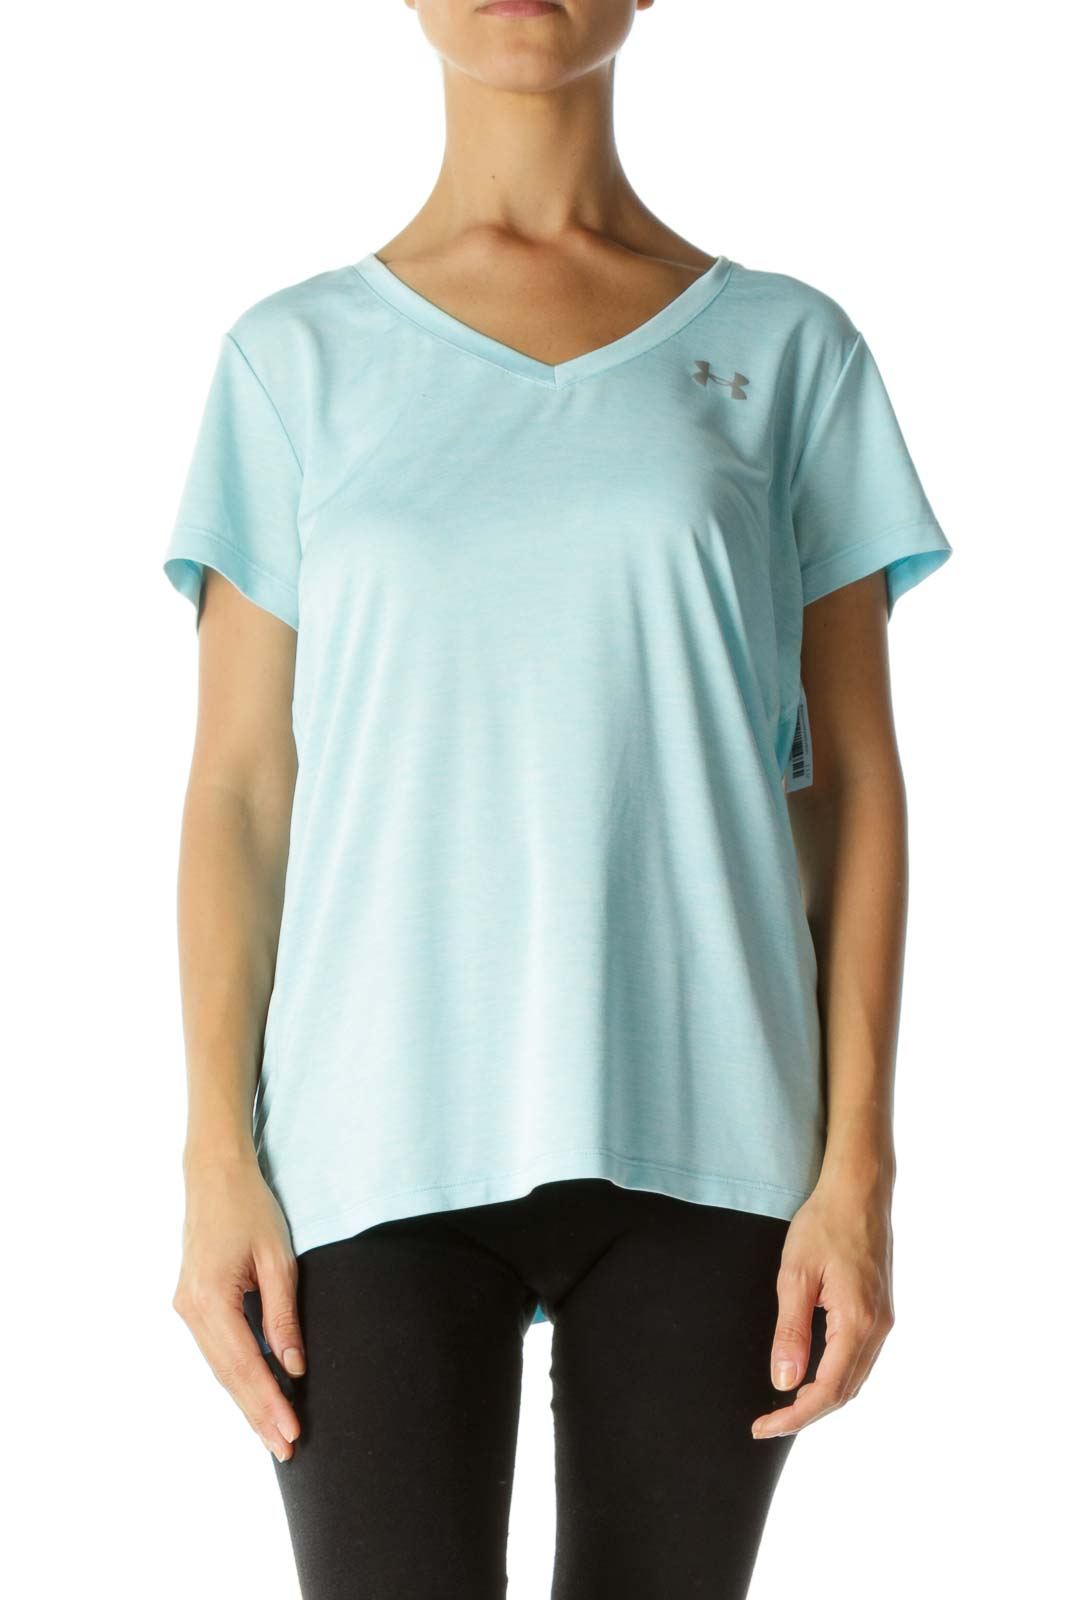 Light Blue V-Neck Mottled Soft Light Sports T-Shirt